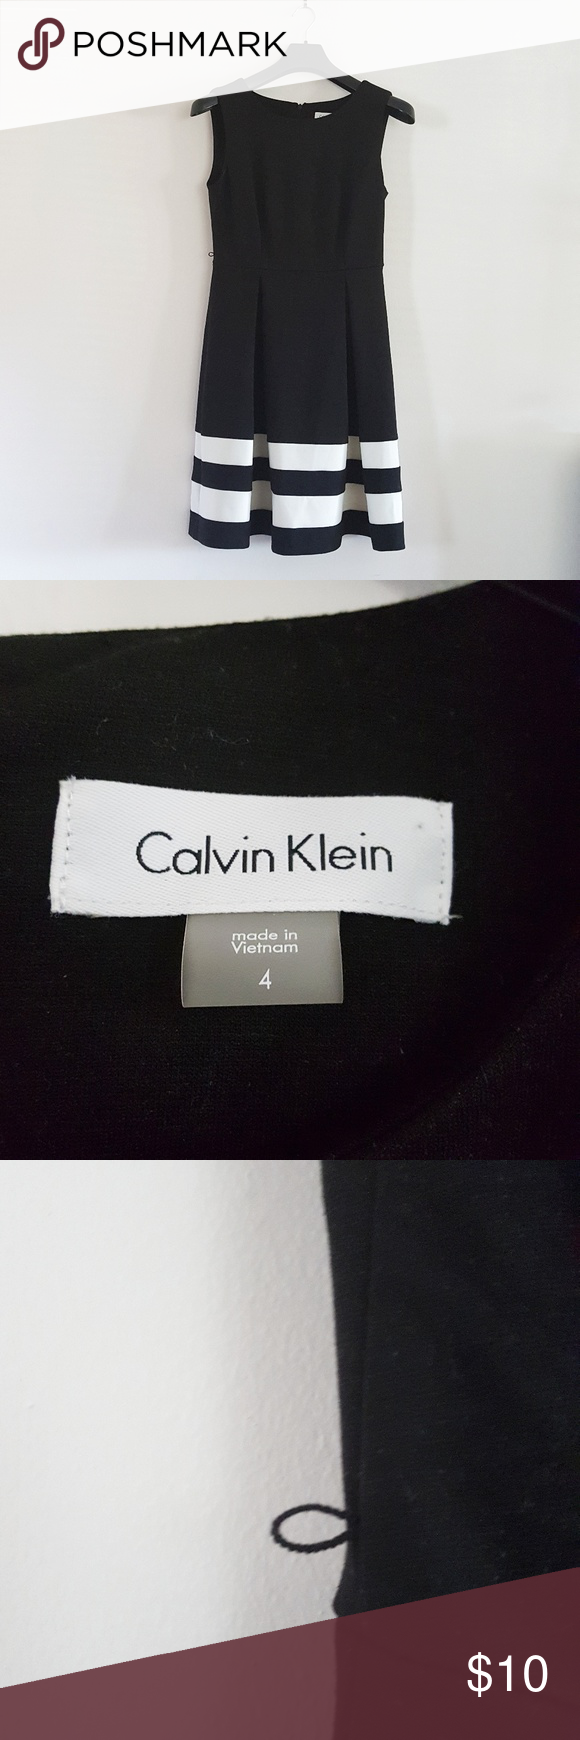 Calvin Klein dress Pleated dress with white striped skirting...sleeveless. Belt loops but missing belt. Belt can be replaced with coordinating belt oy just cut loops. Calvin Klein Dresses Mini